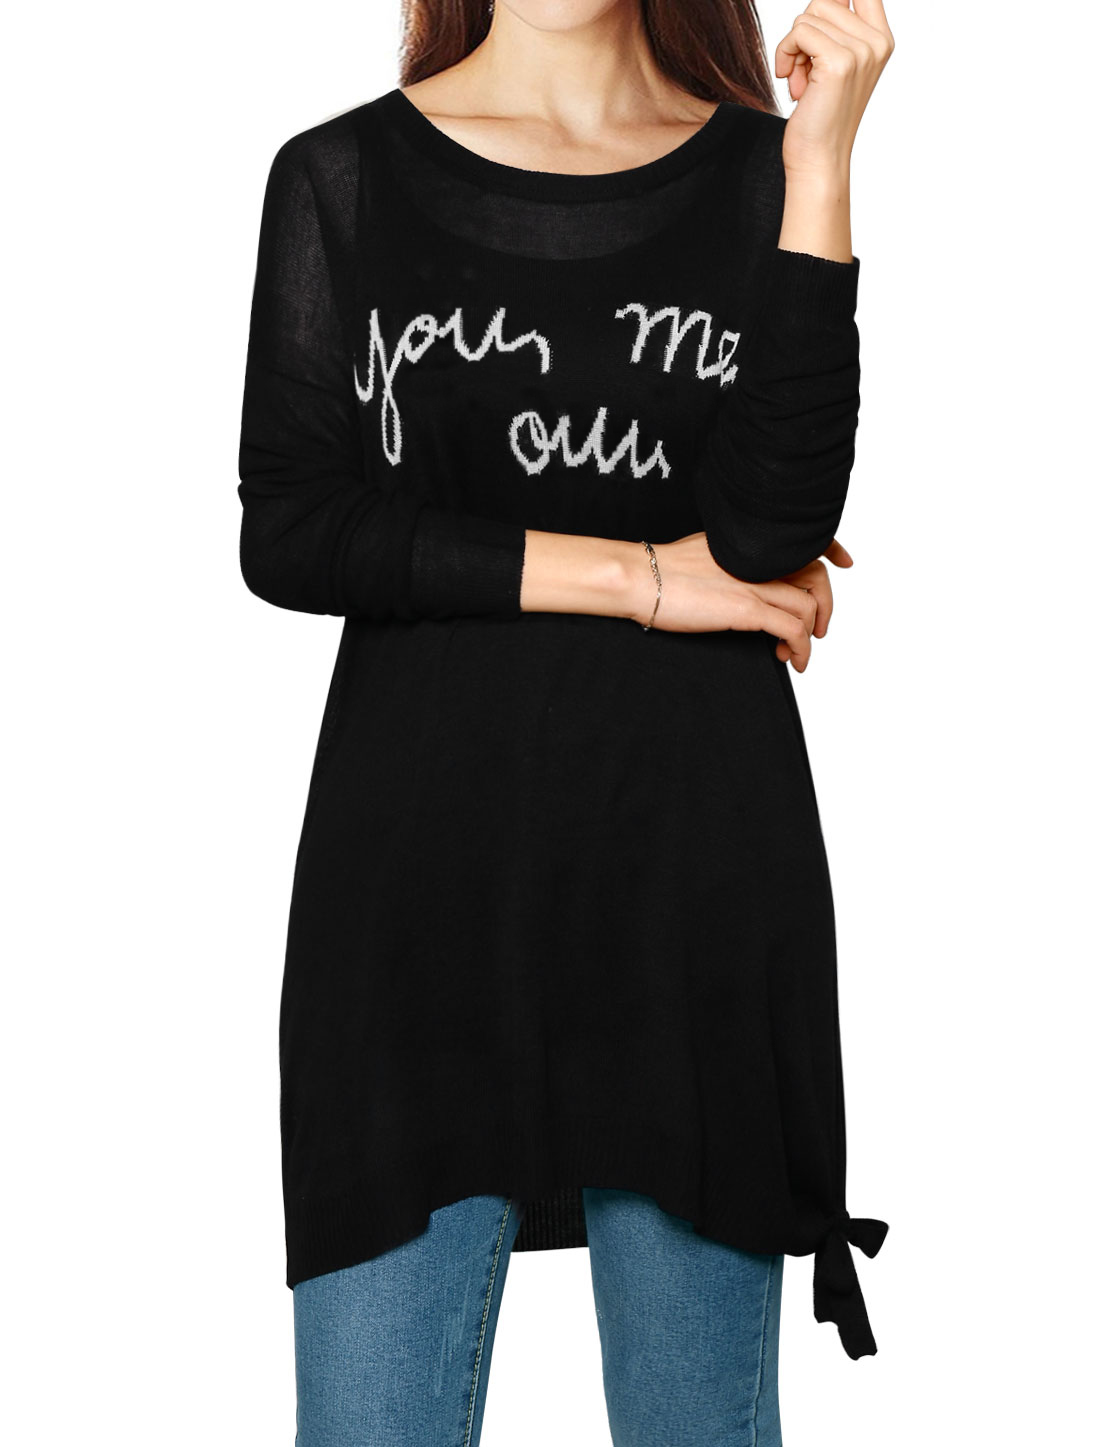 Women Dropped Shoulder Side-Slit Letters Loose Knit Top Black M